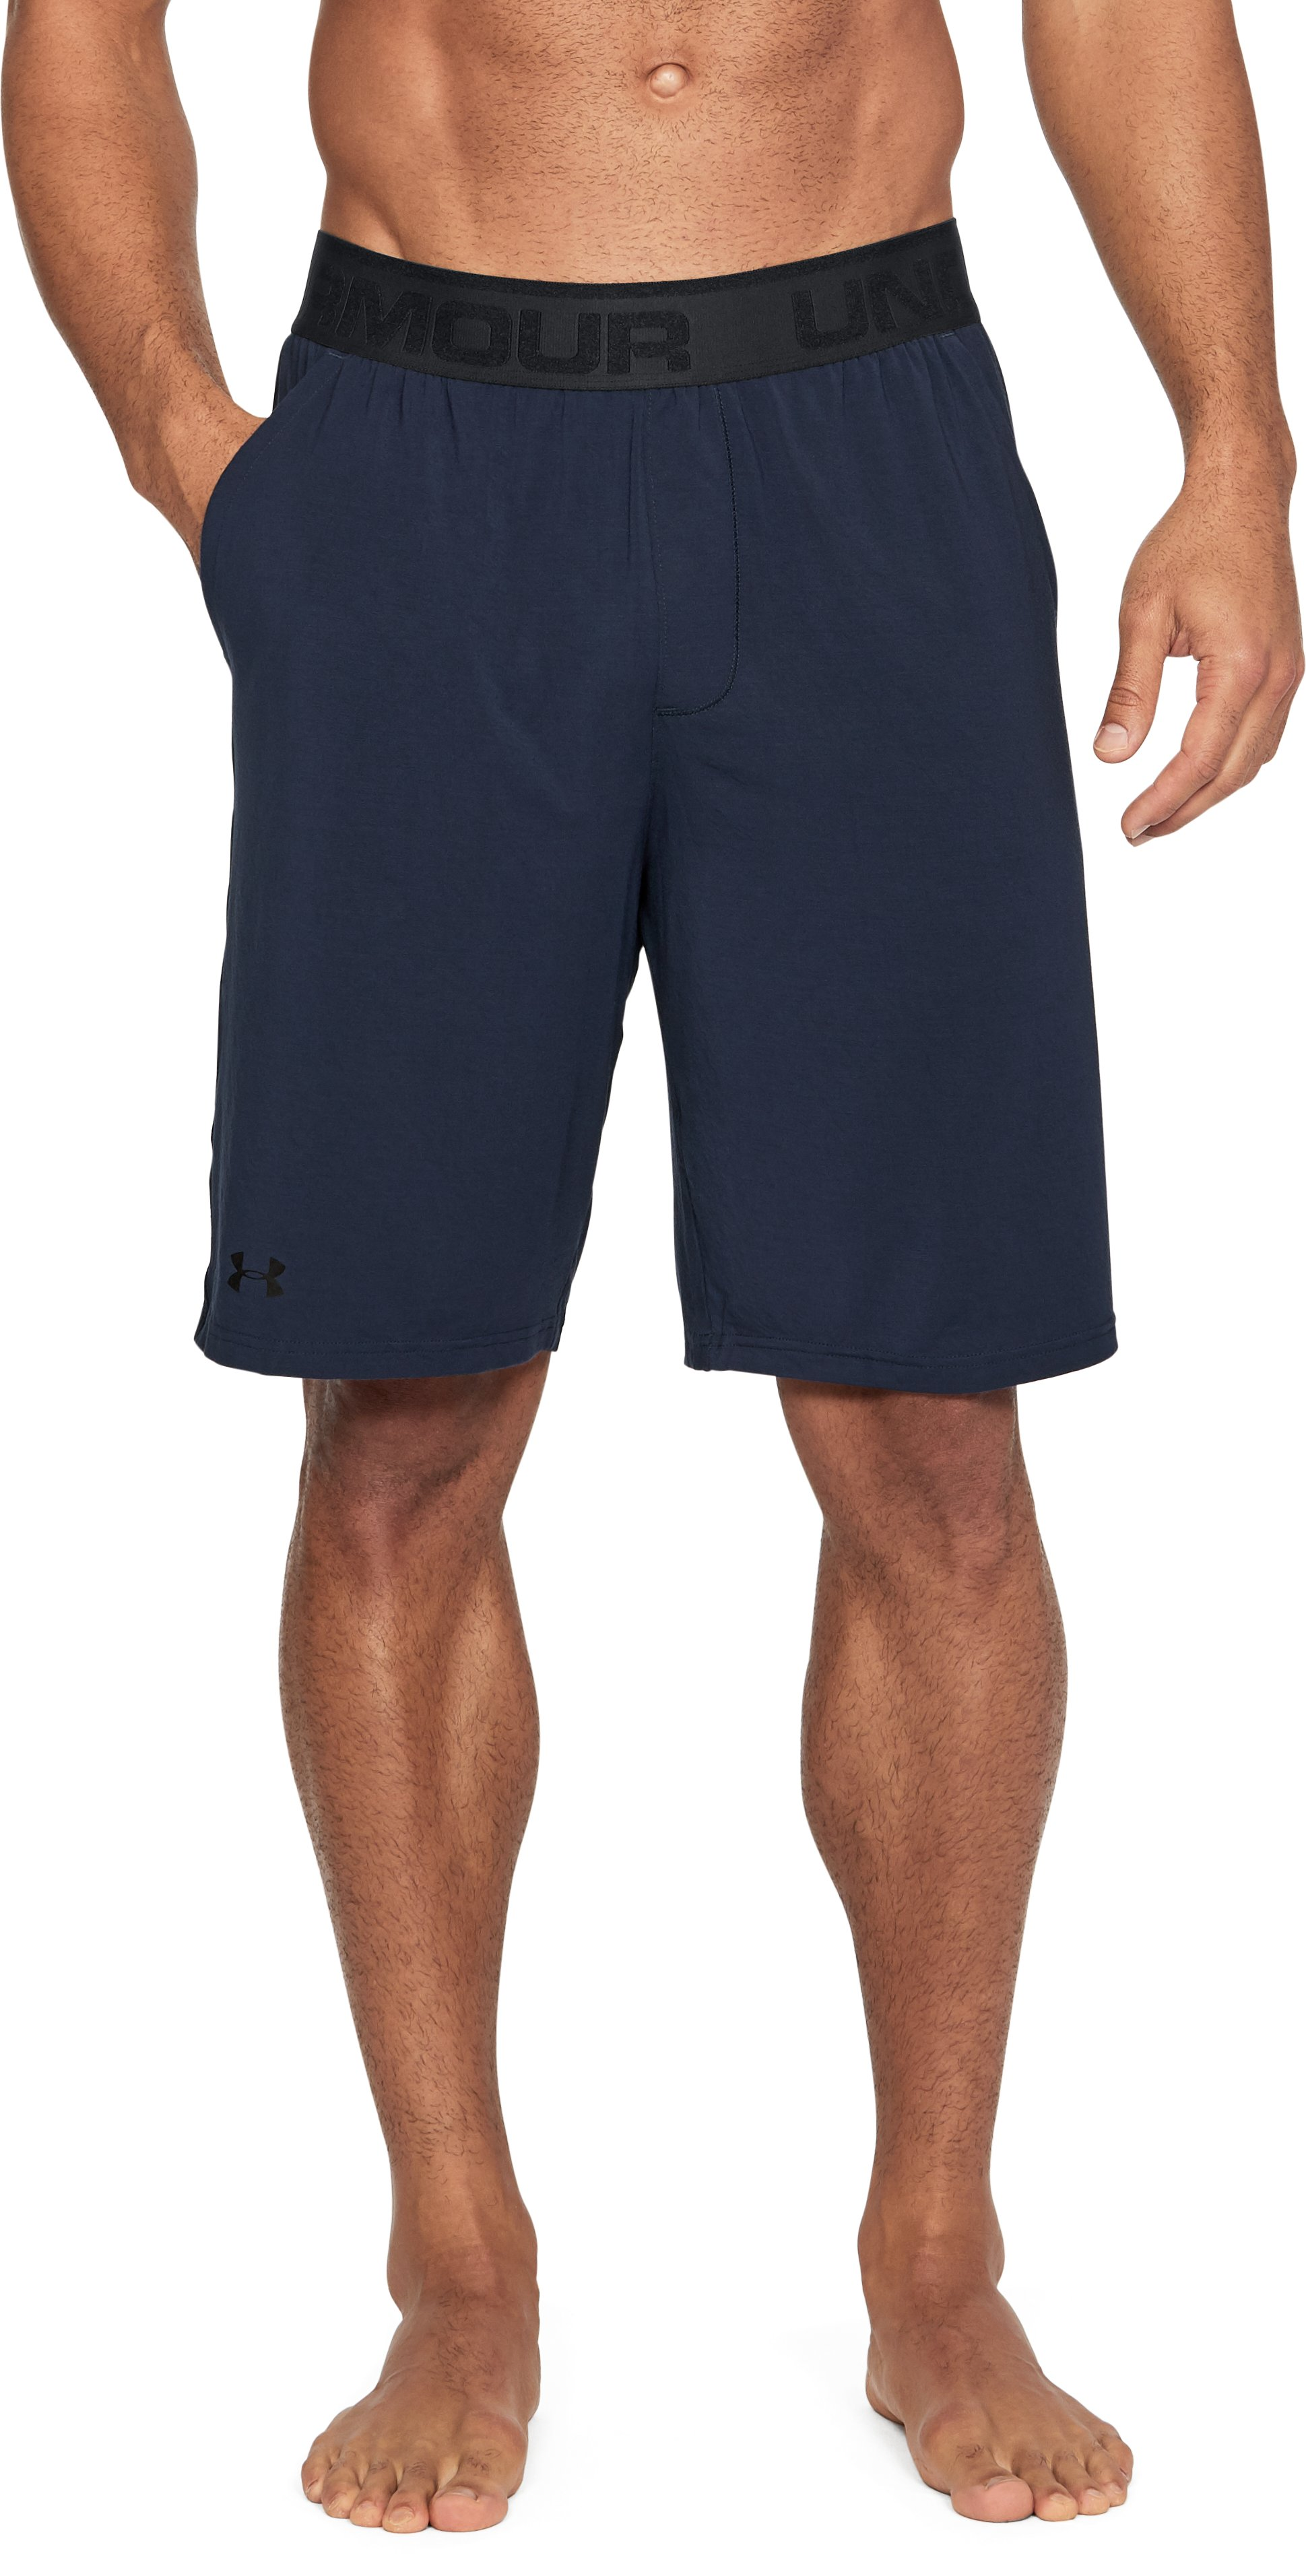 Men's Athlete Recovery Ultra Comfort Sleepwear Shorts, Midnight Navy, undefined